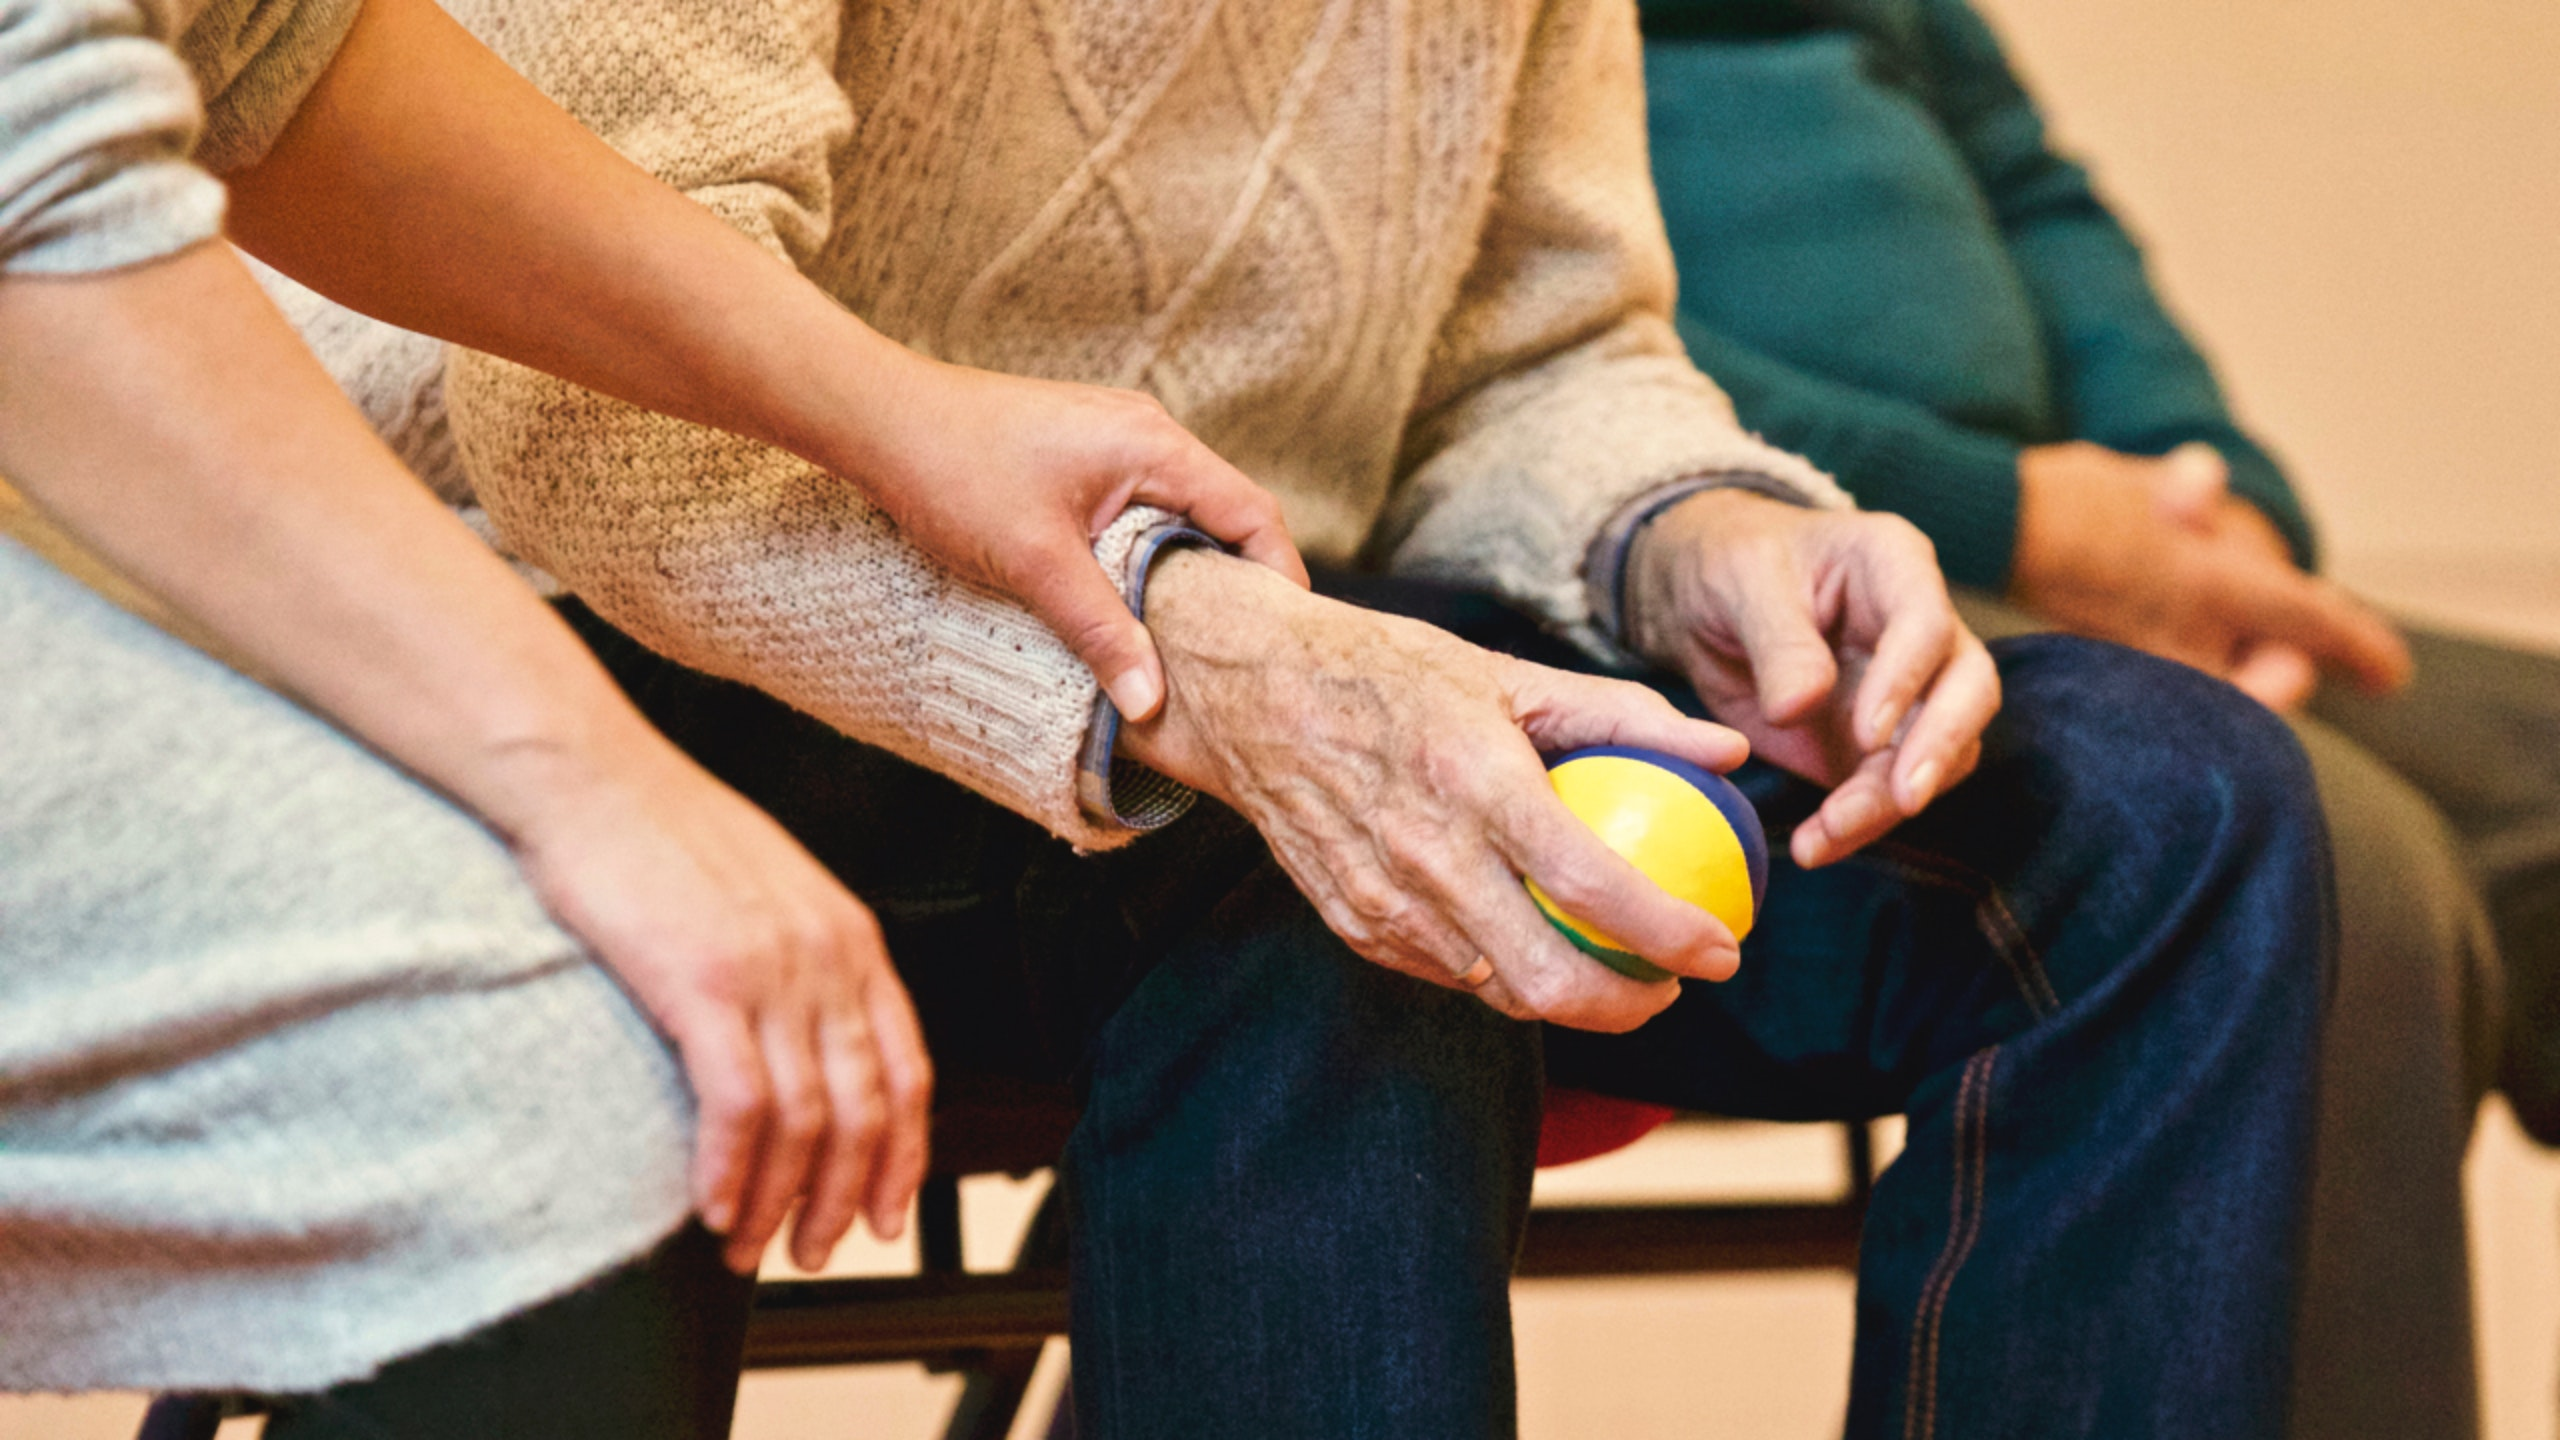 Caregivers deal with problems related to isolation, stress, and depression. It is important to learn how to prevent and treat these problems if they occur.